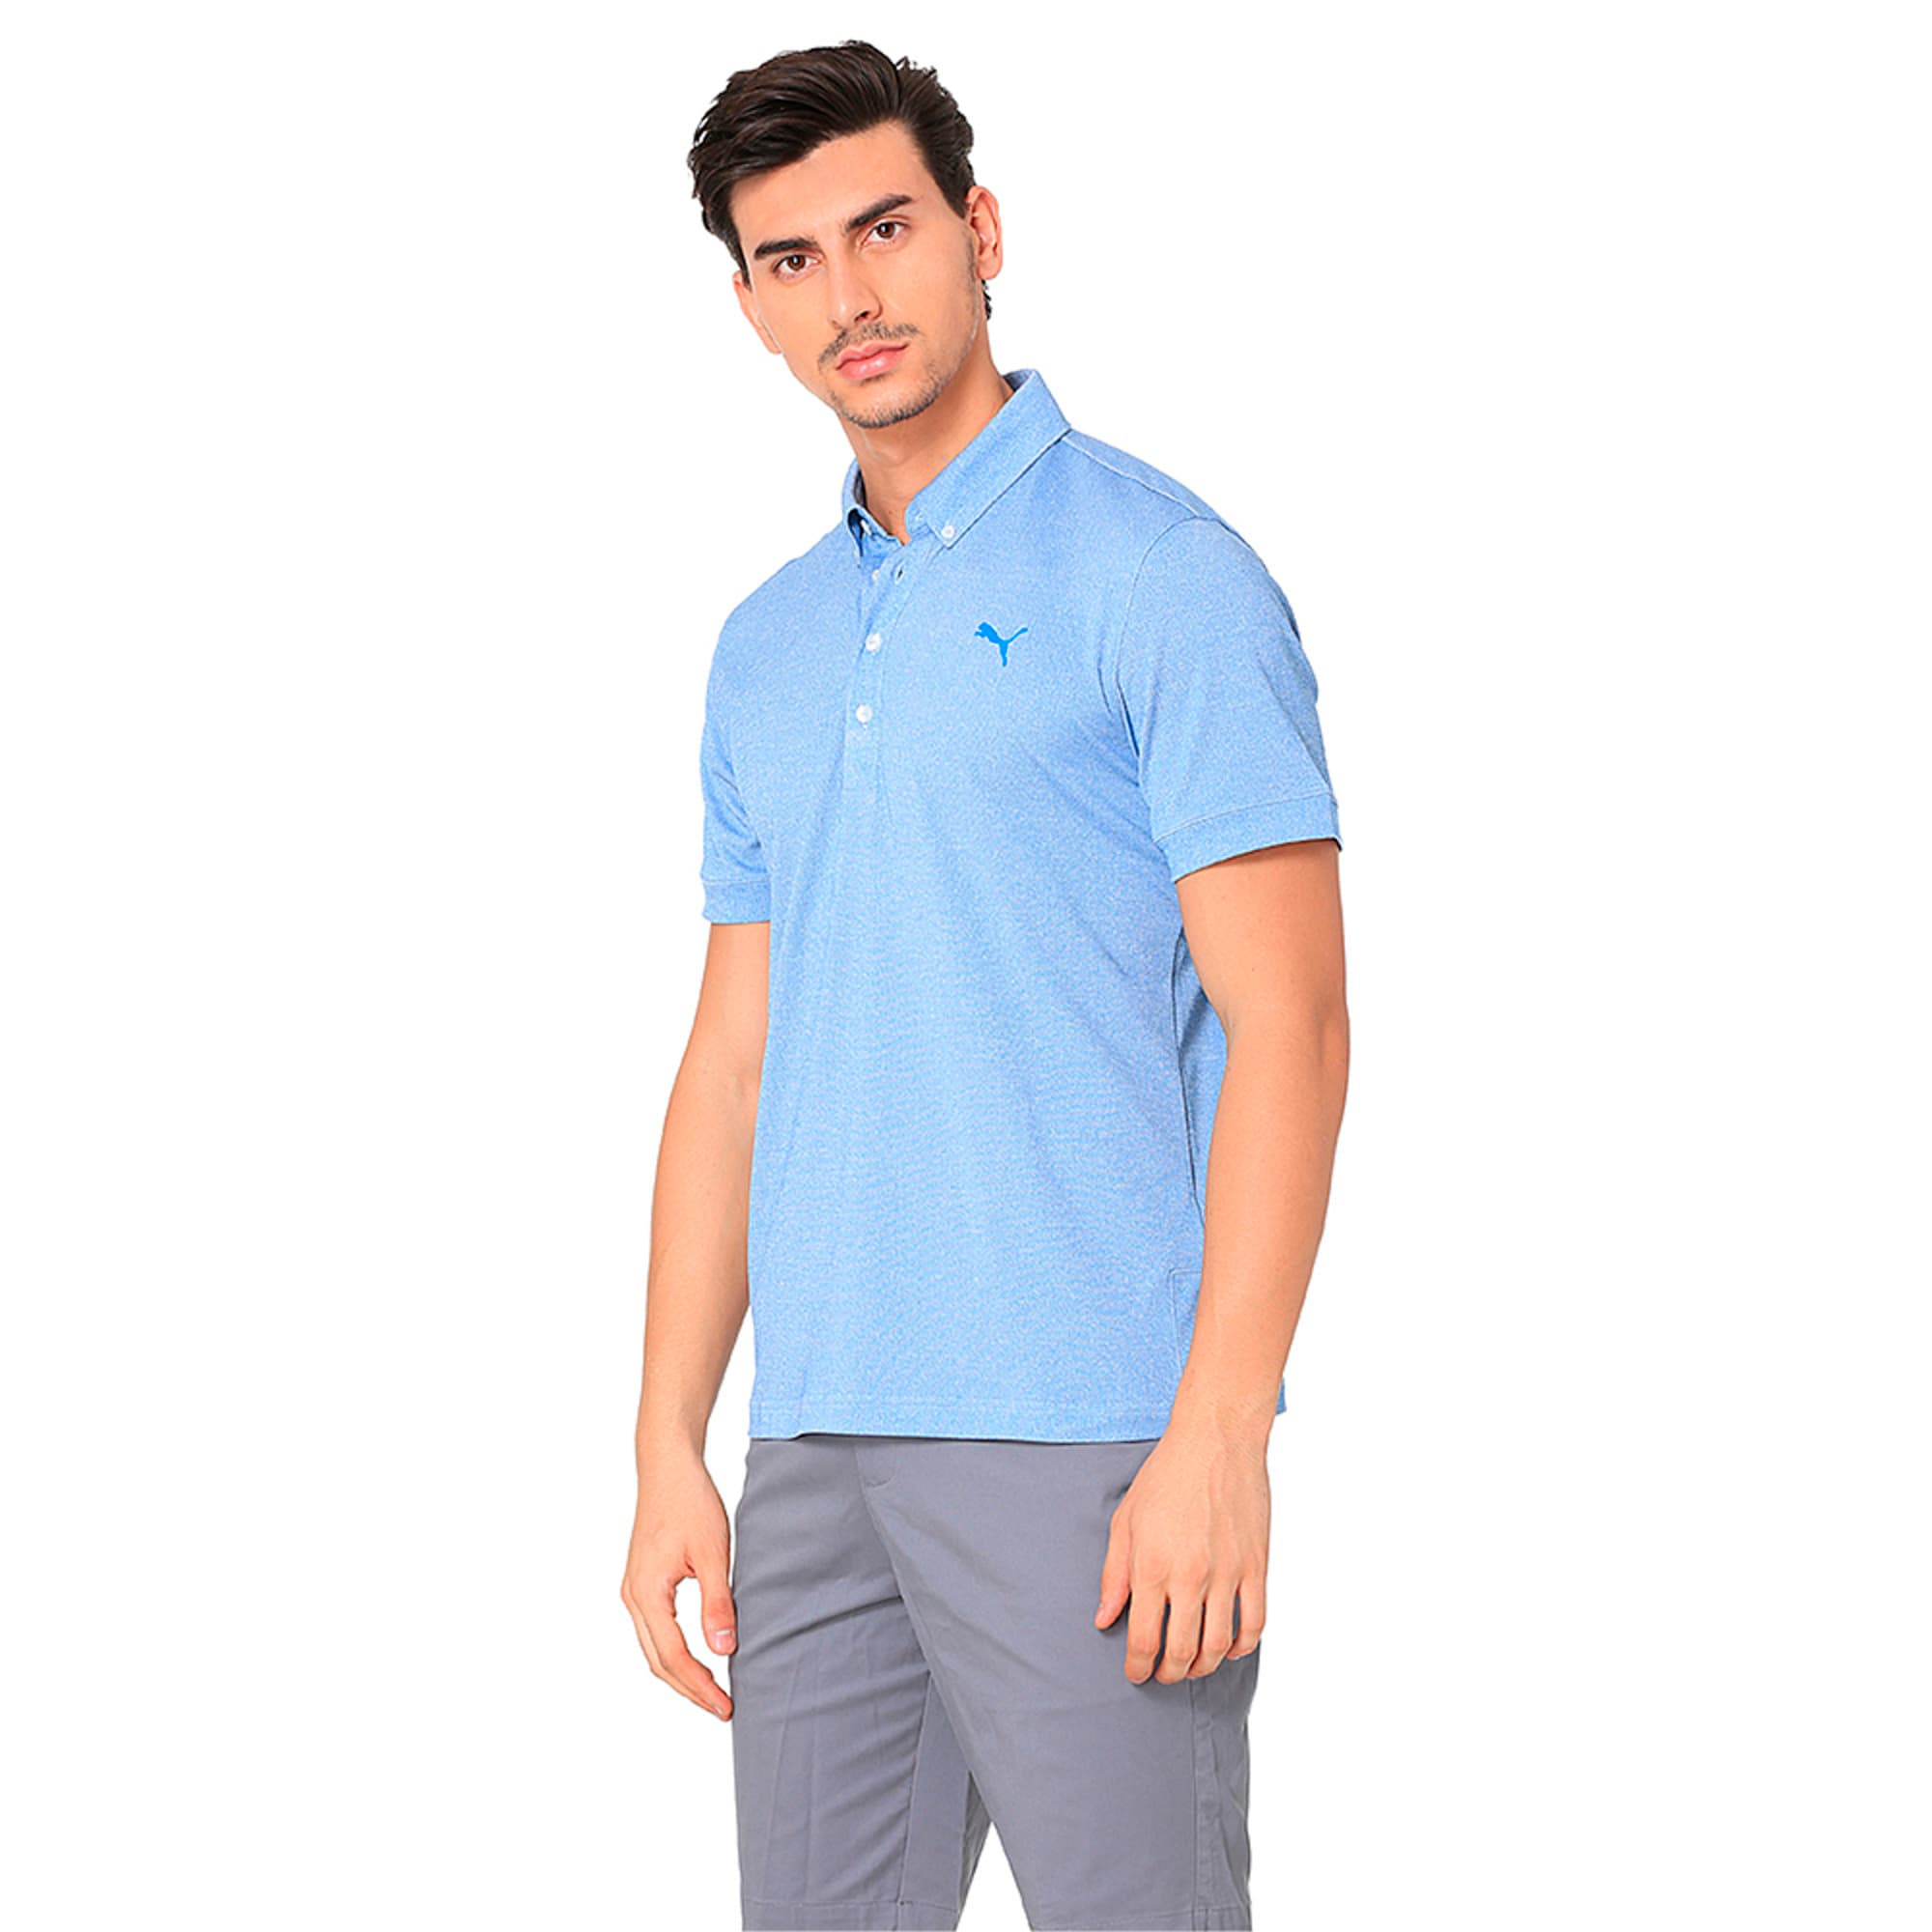 Thumbnail 4 of Golf Men's Tailored Oxford Heather Polo, EBL Heather, medium-IND